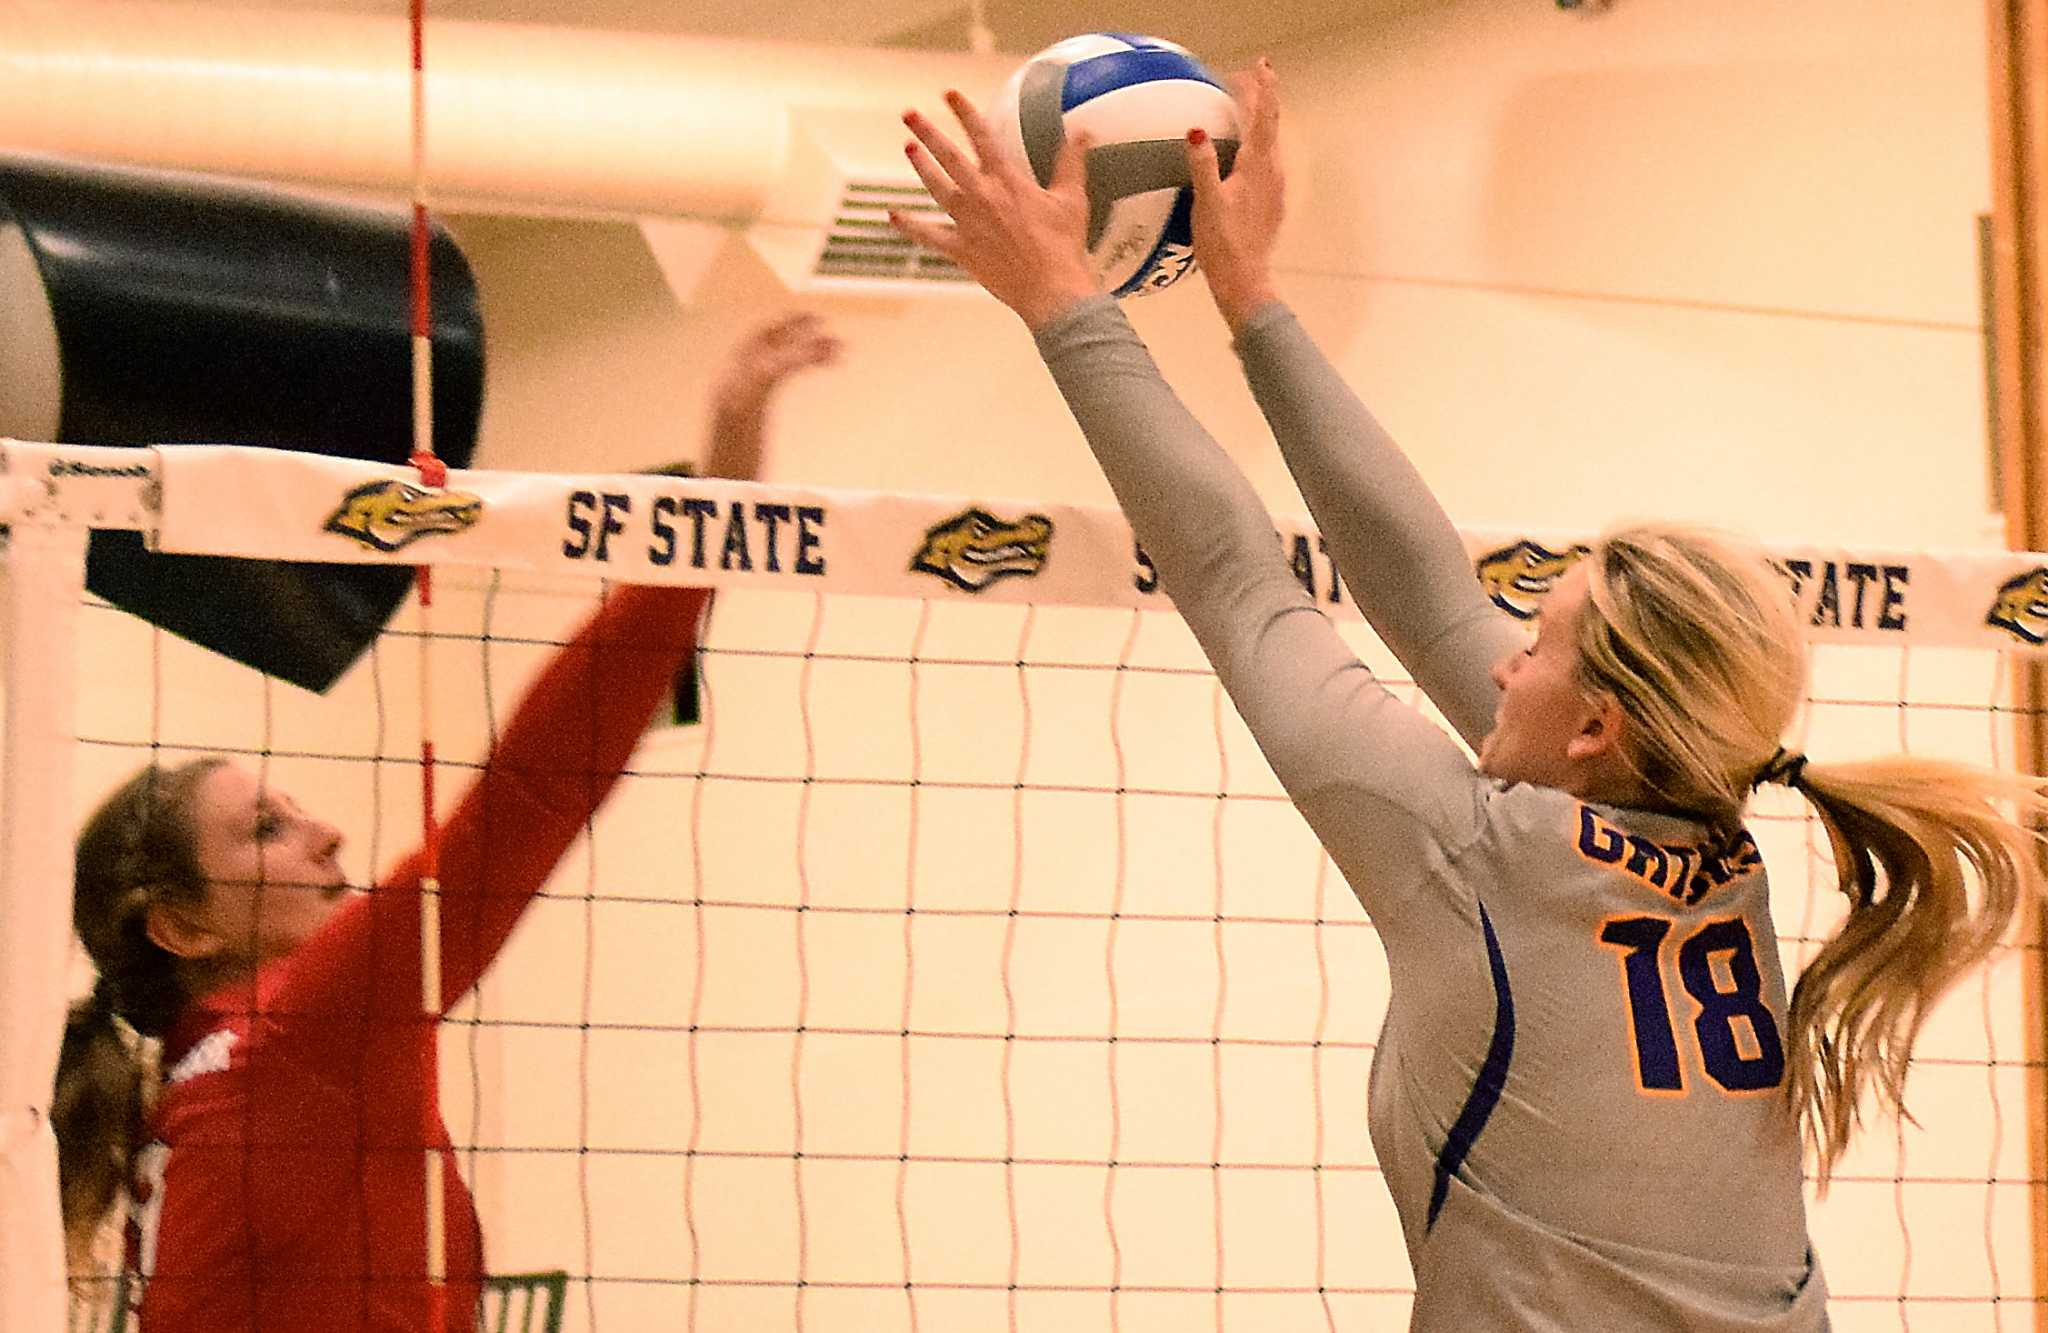 SF State Gator's junior outside hitter Christine Johnson (18) blocks the ball during their lose to Simon Fraser University in the Swamp on Thursday, Sept. 8, 2016. The Gators lost in three straight sets. (Eric Chan/Xpress)